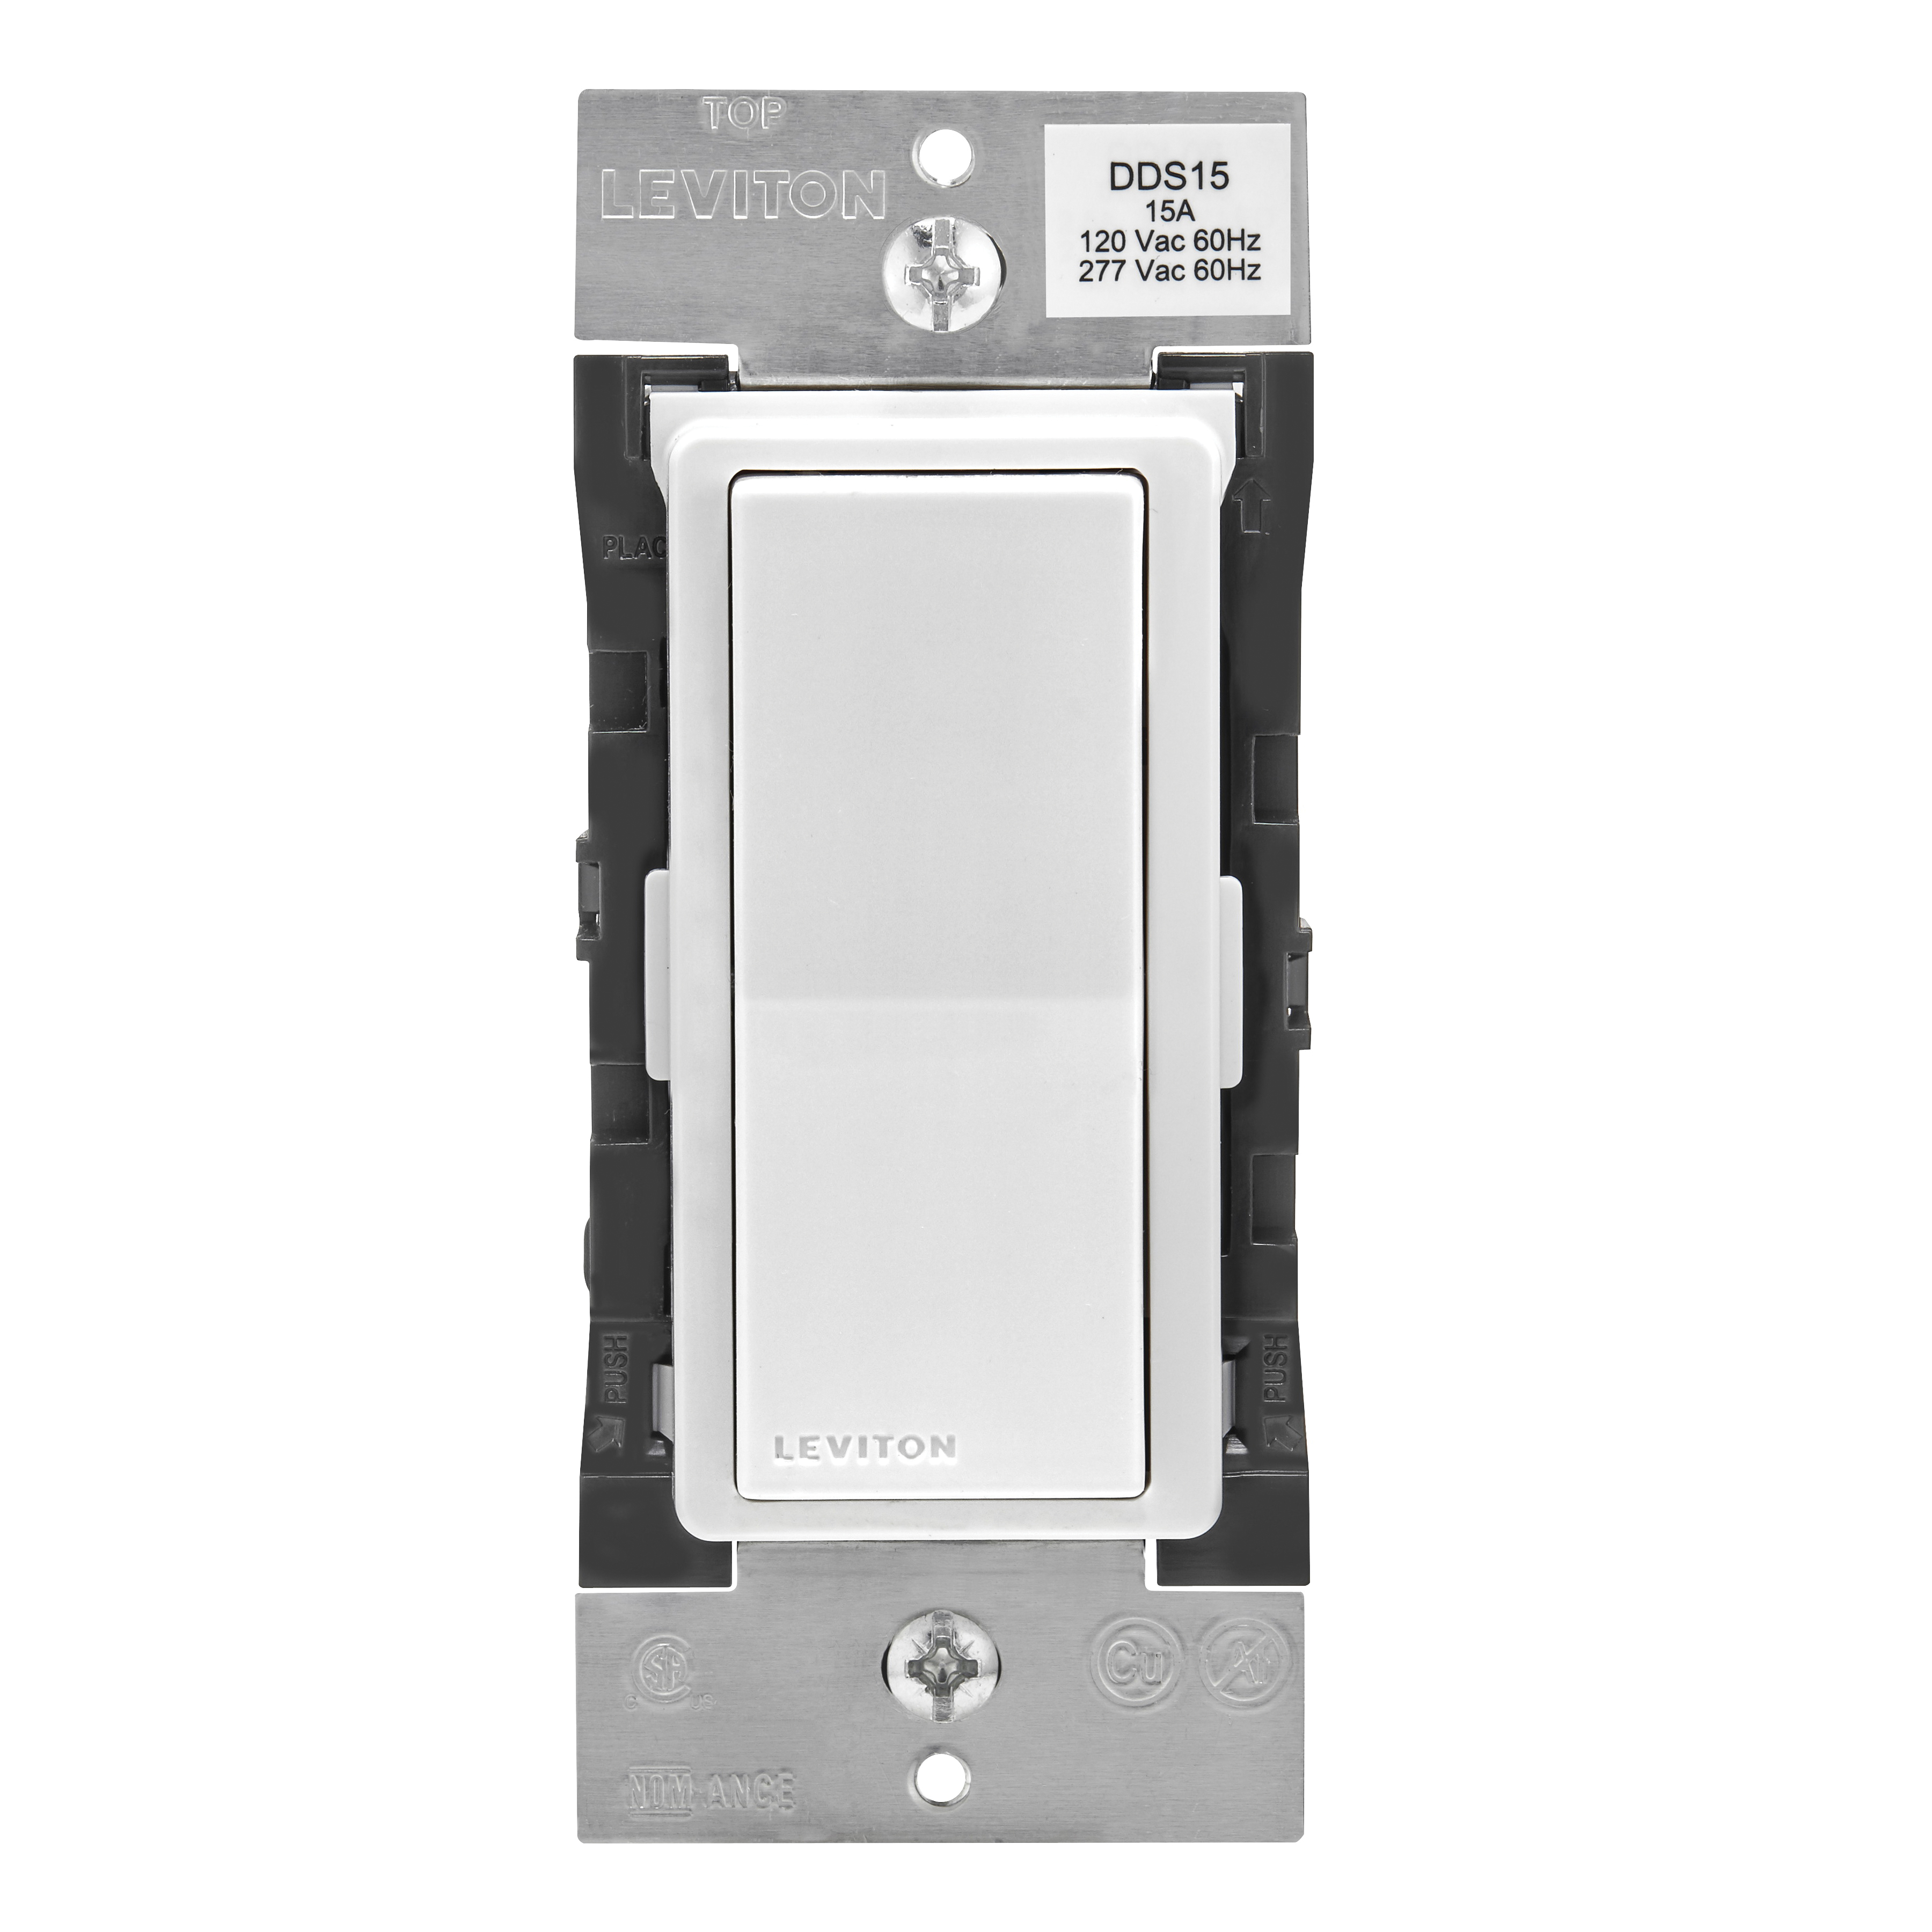 Picture of Leviton Decora Digital R00-DDS15-BDM Dual Voltage Switch with Timer, 1-Pole, 3-Way, 120/277 VAC, 60 Hz, Bluetooth